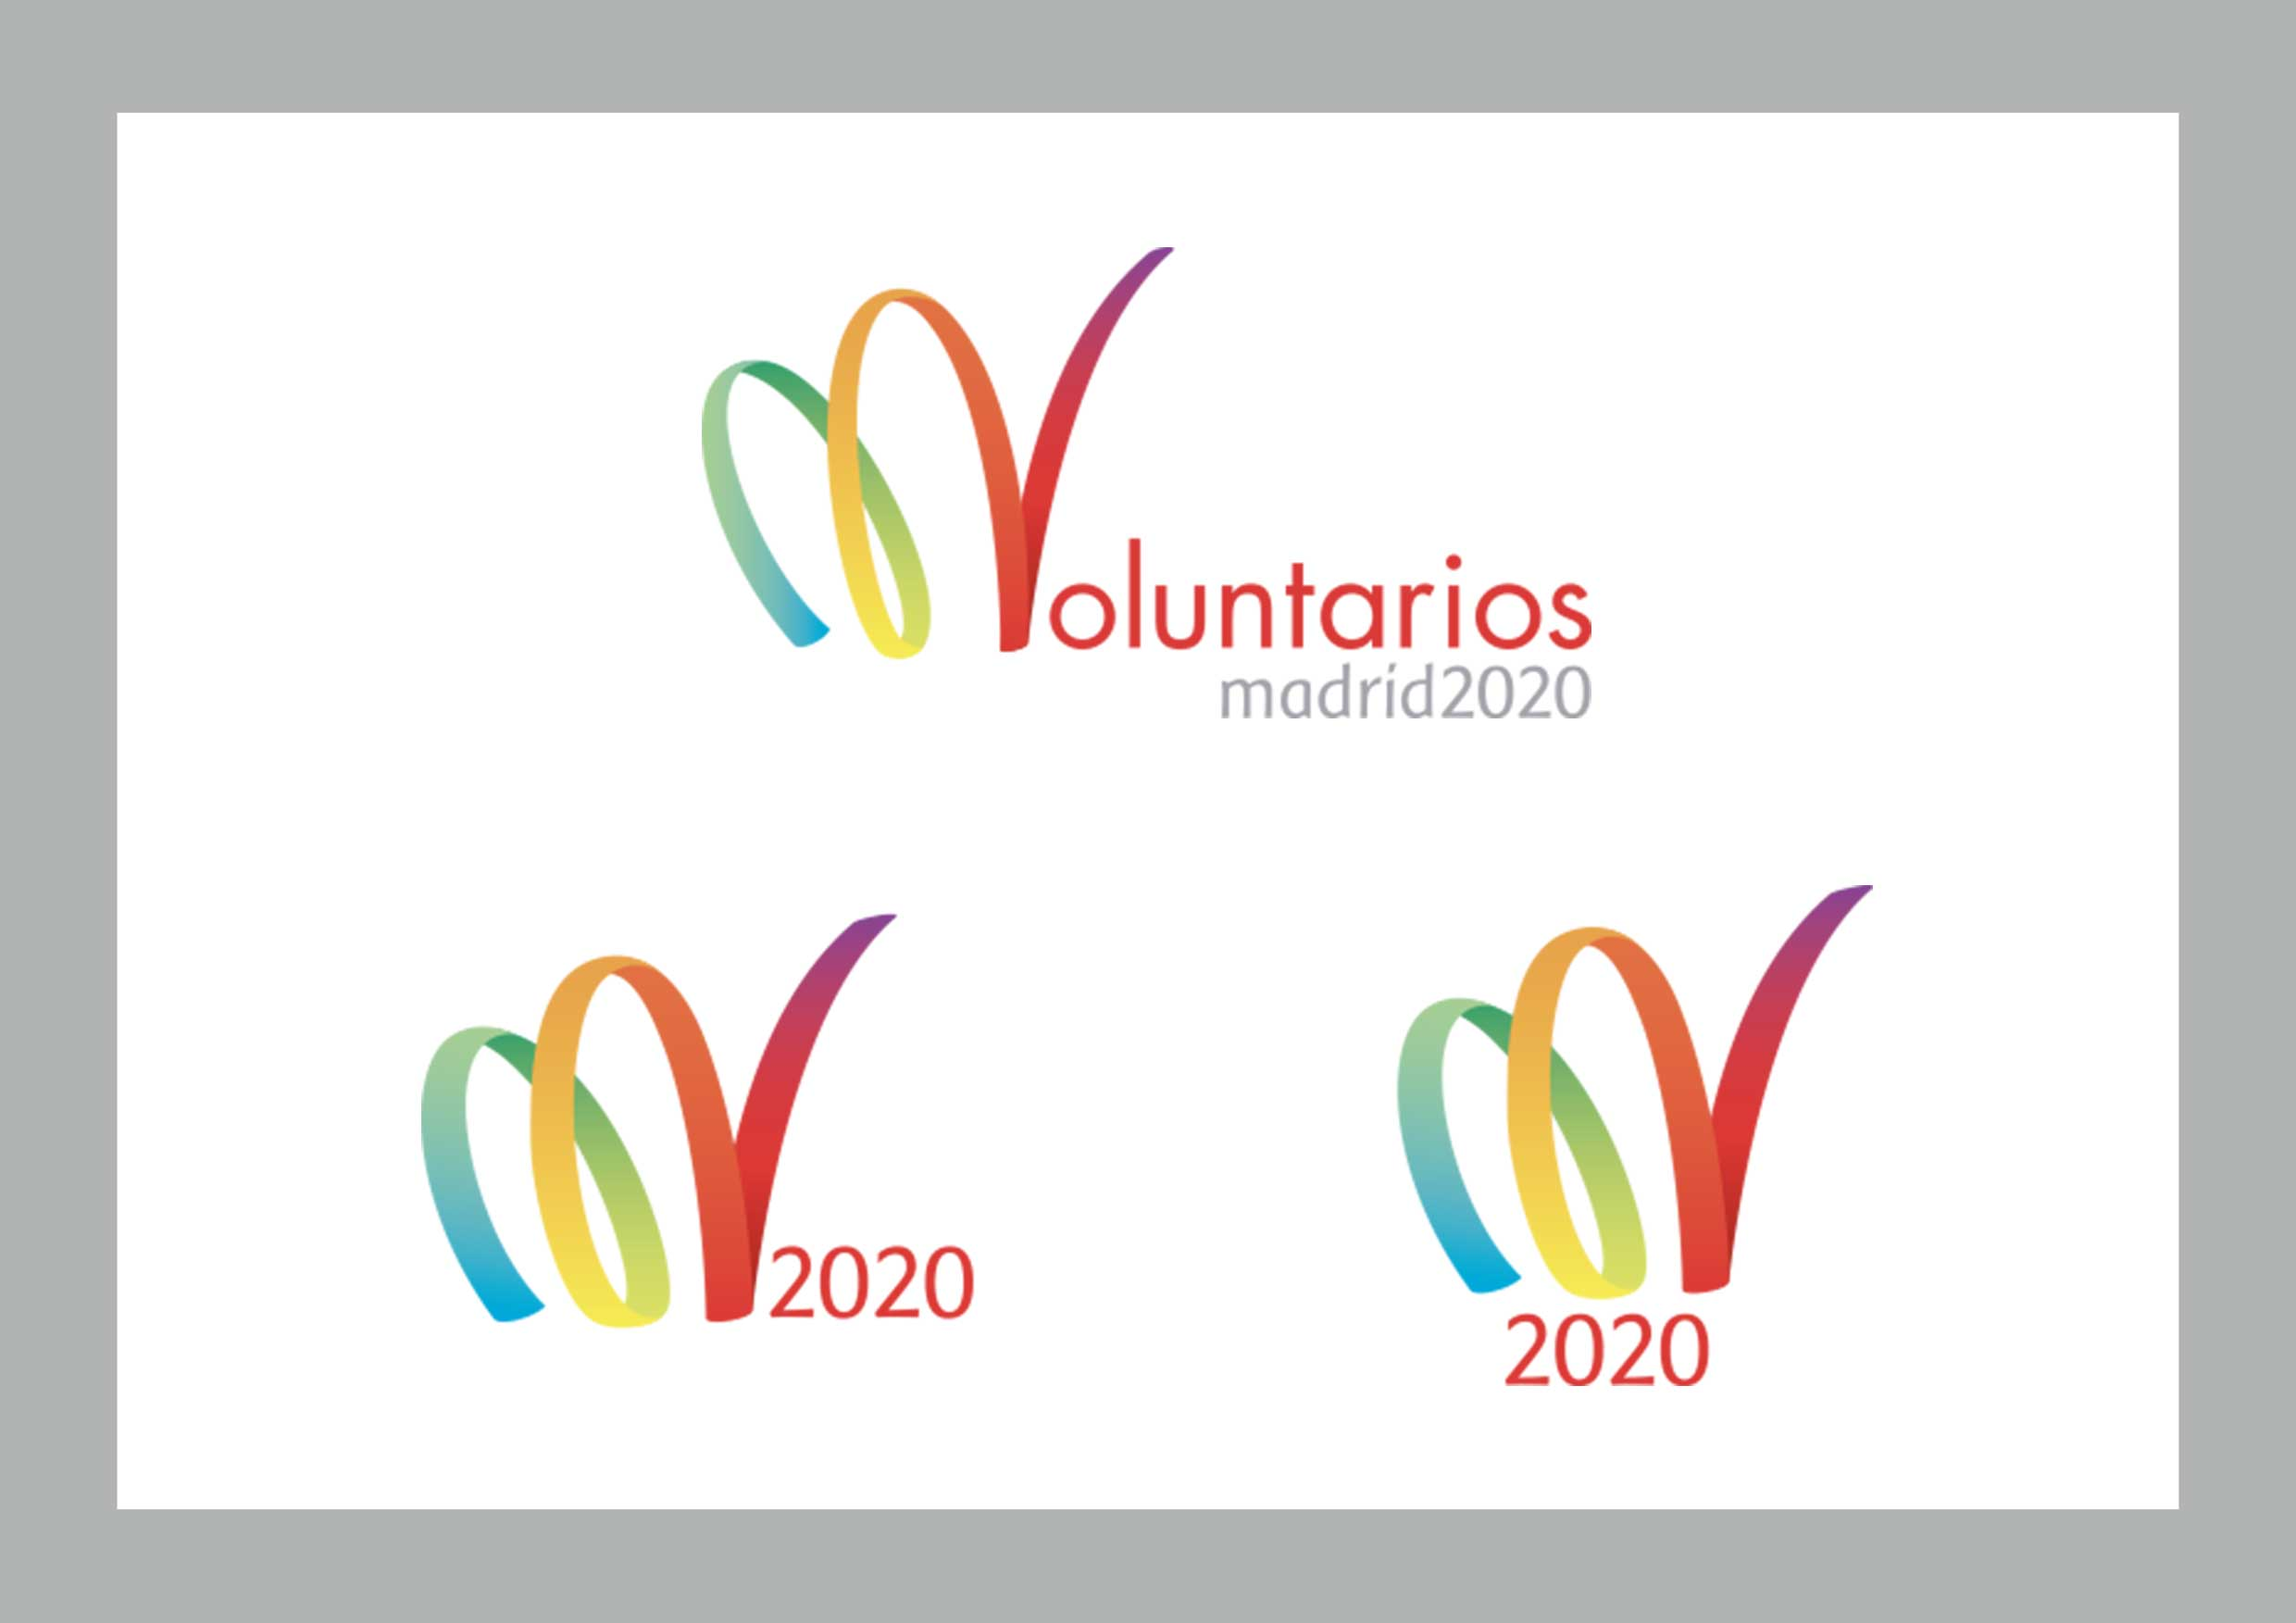 Versiones logotipo Voluntarios Madrid 2020